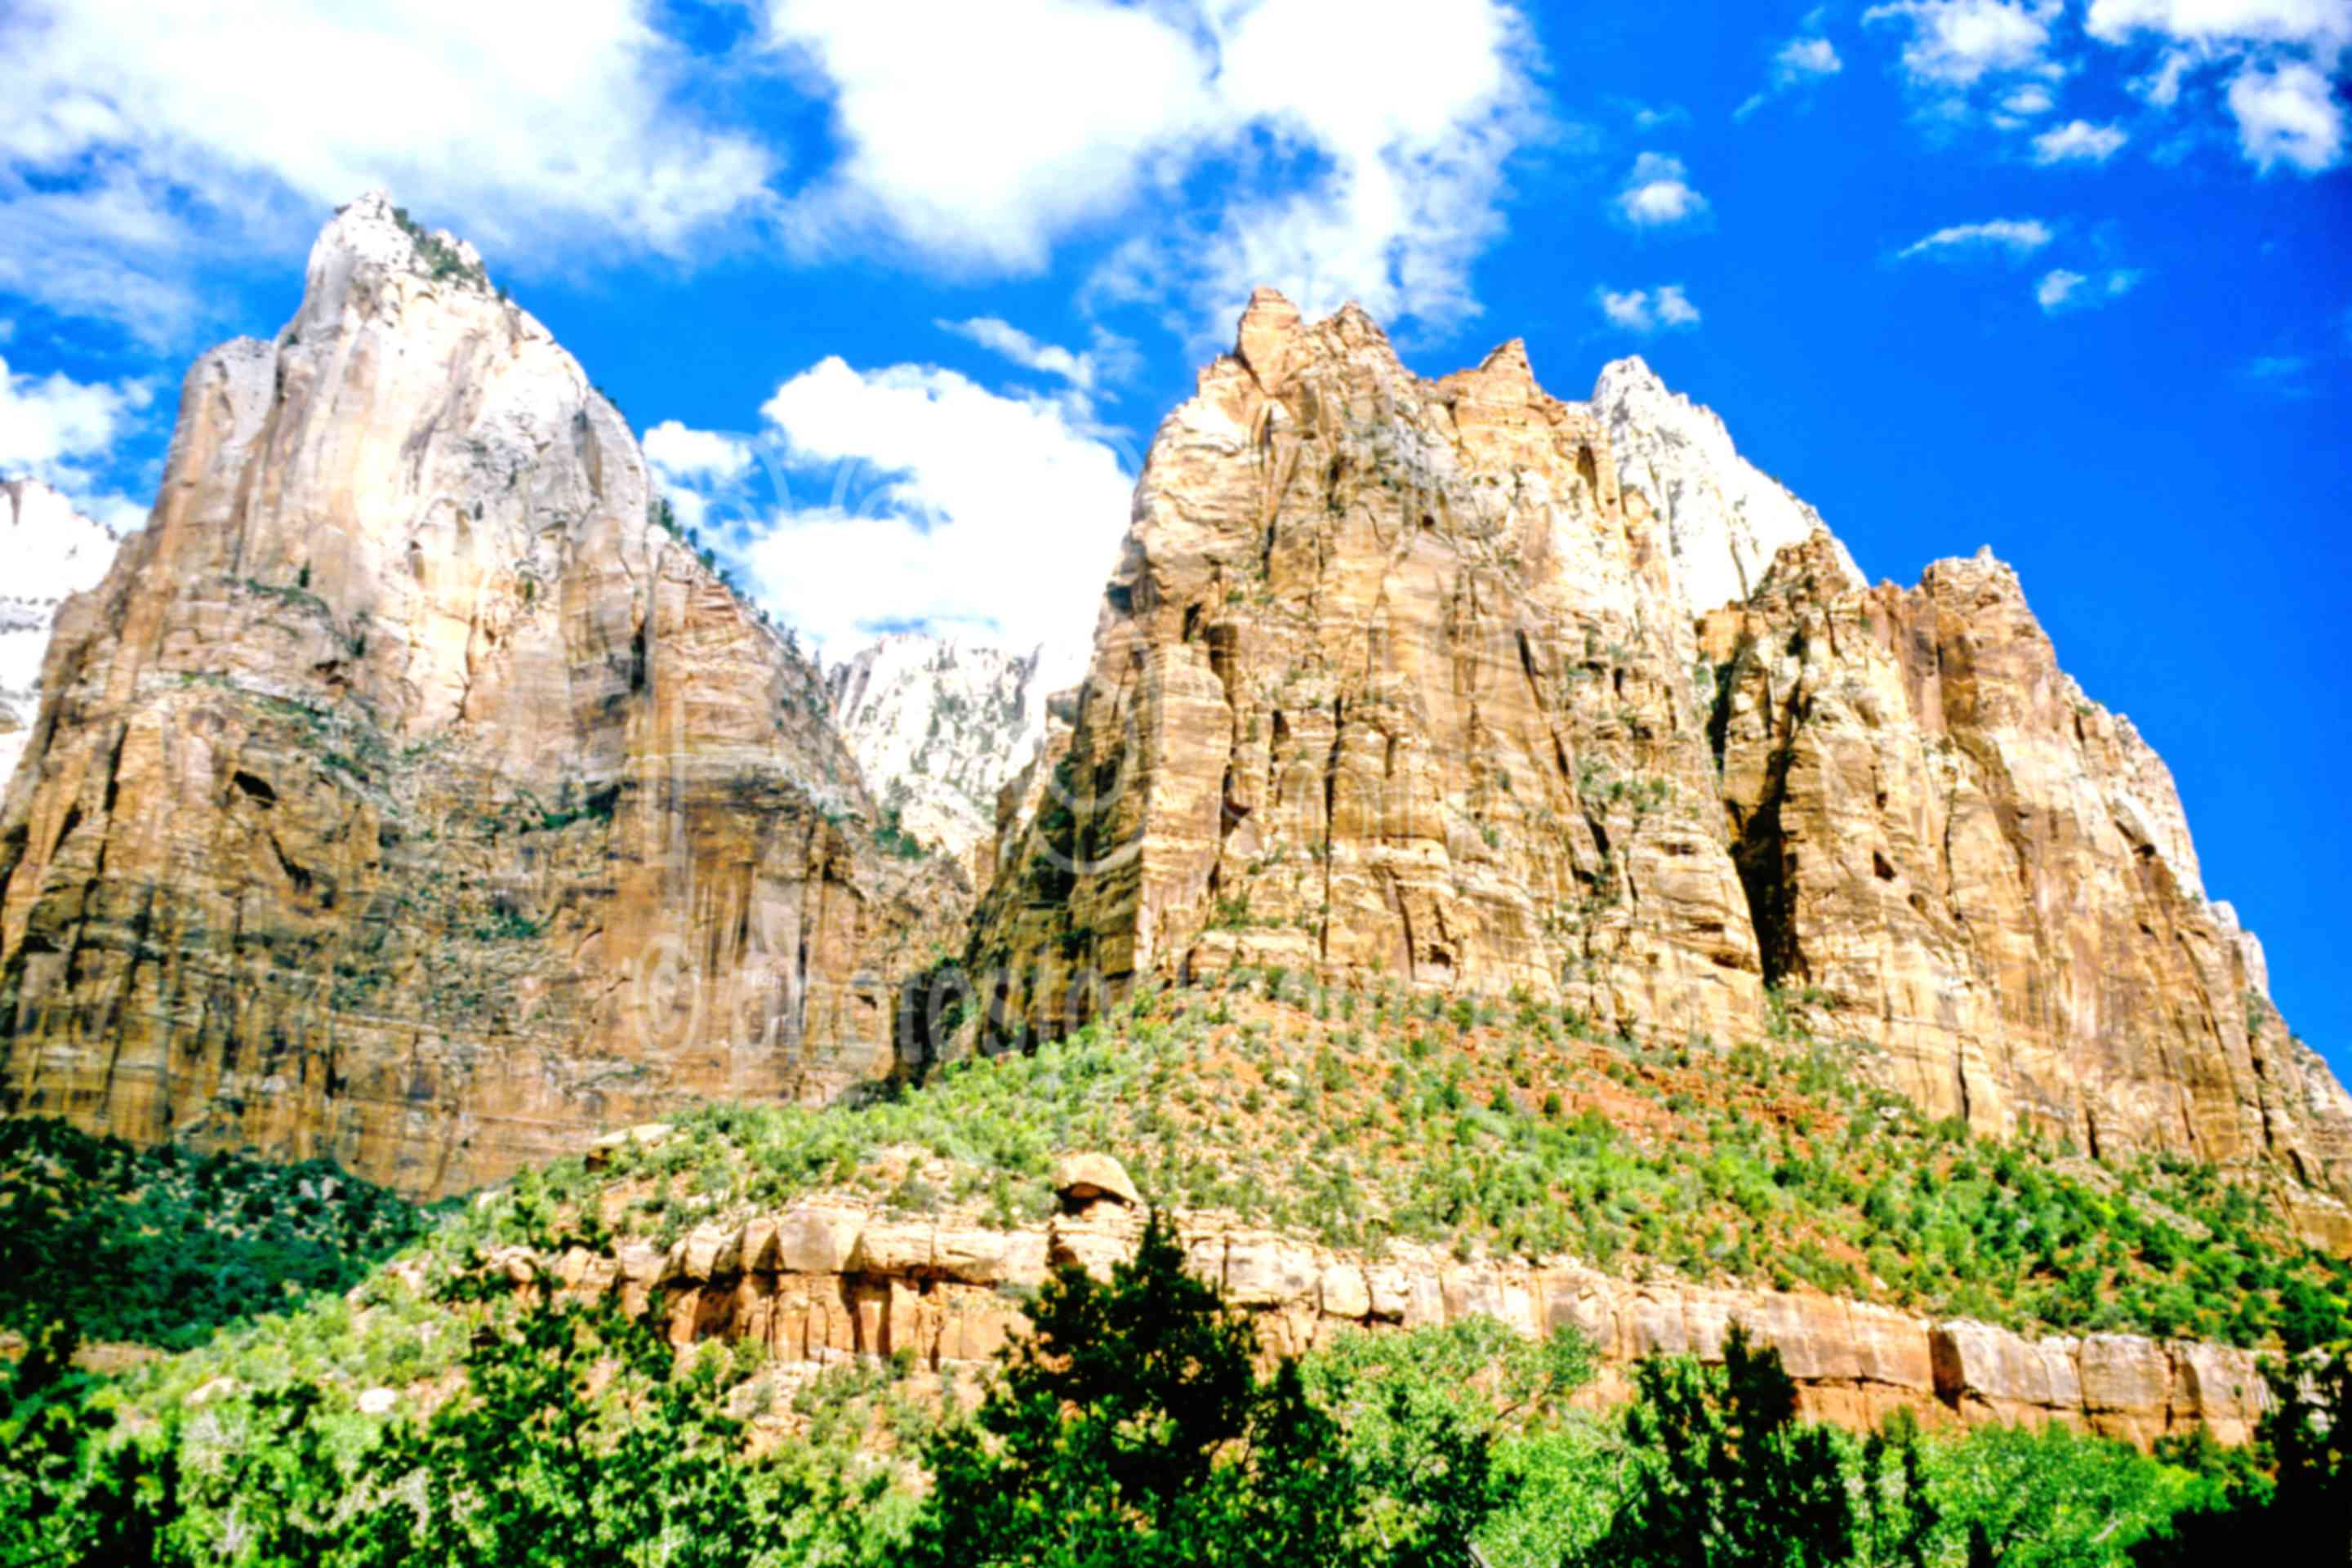 Three Patriarchs,usas,national park,nature,national parks